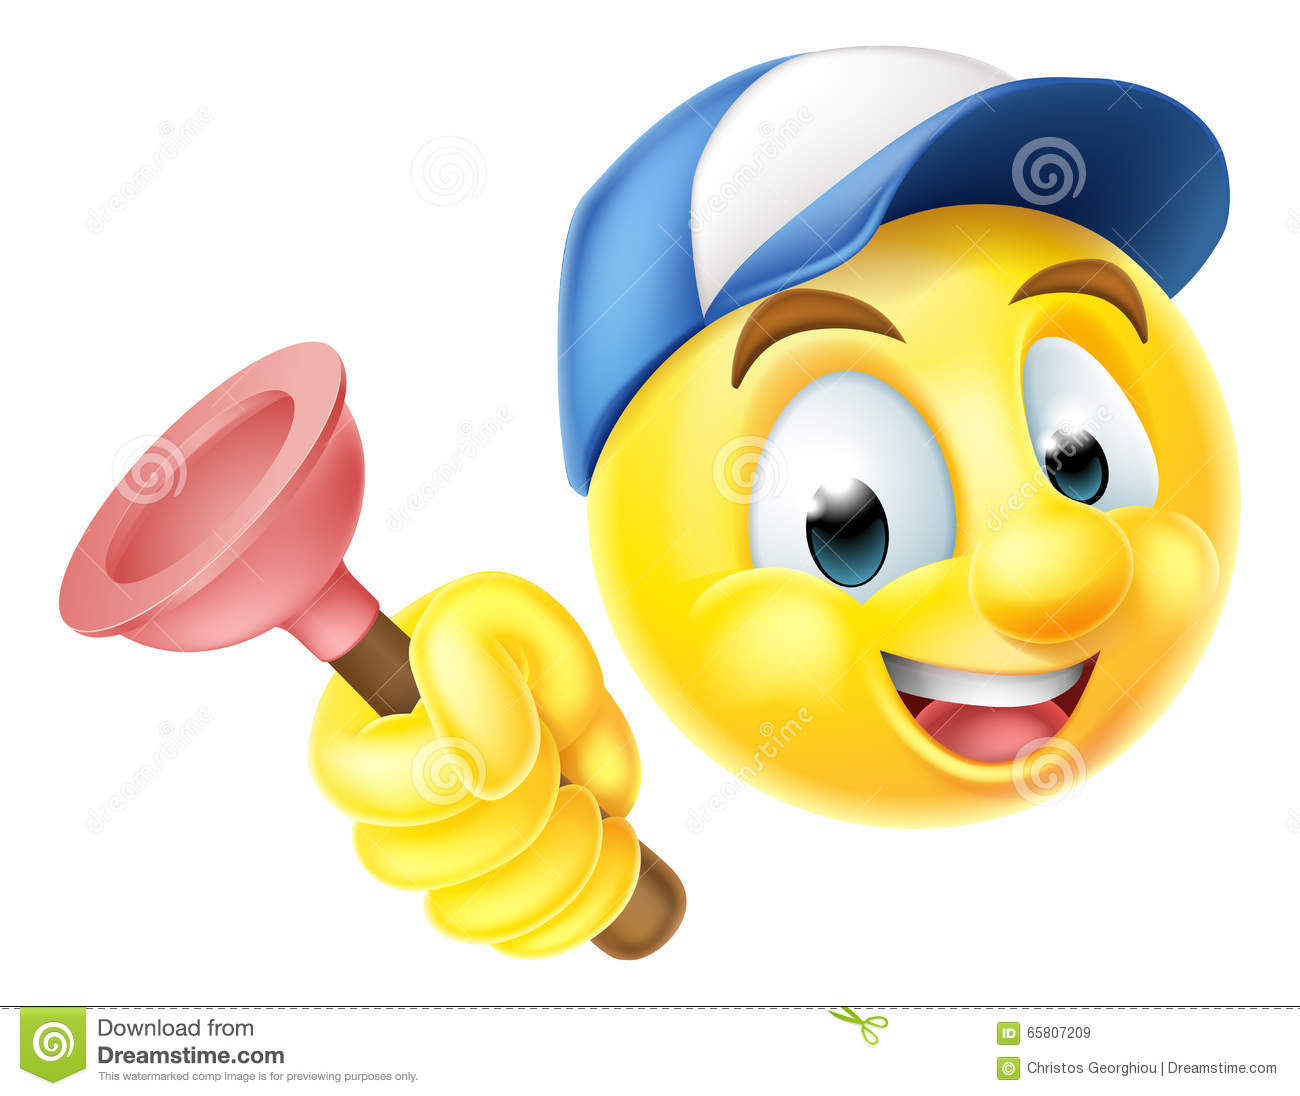 plumber-emoji-emoticon-plunger-cartoon-smiley-face-character-holding-sink-toilet-65807209.jpg